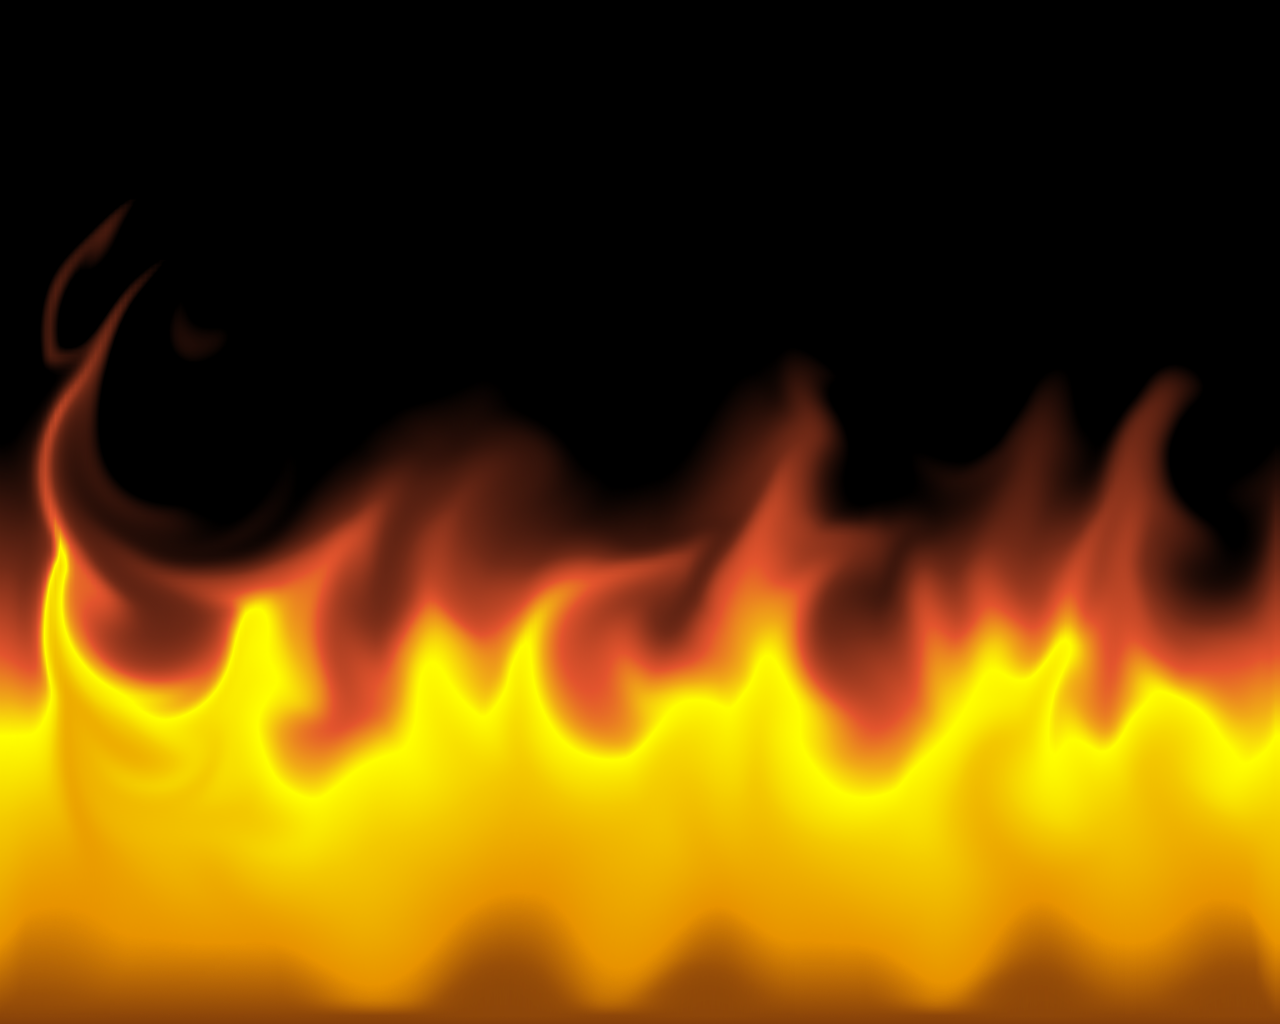 wallpaper firepng [1280x1024] 1280x1024